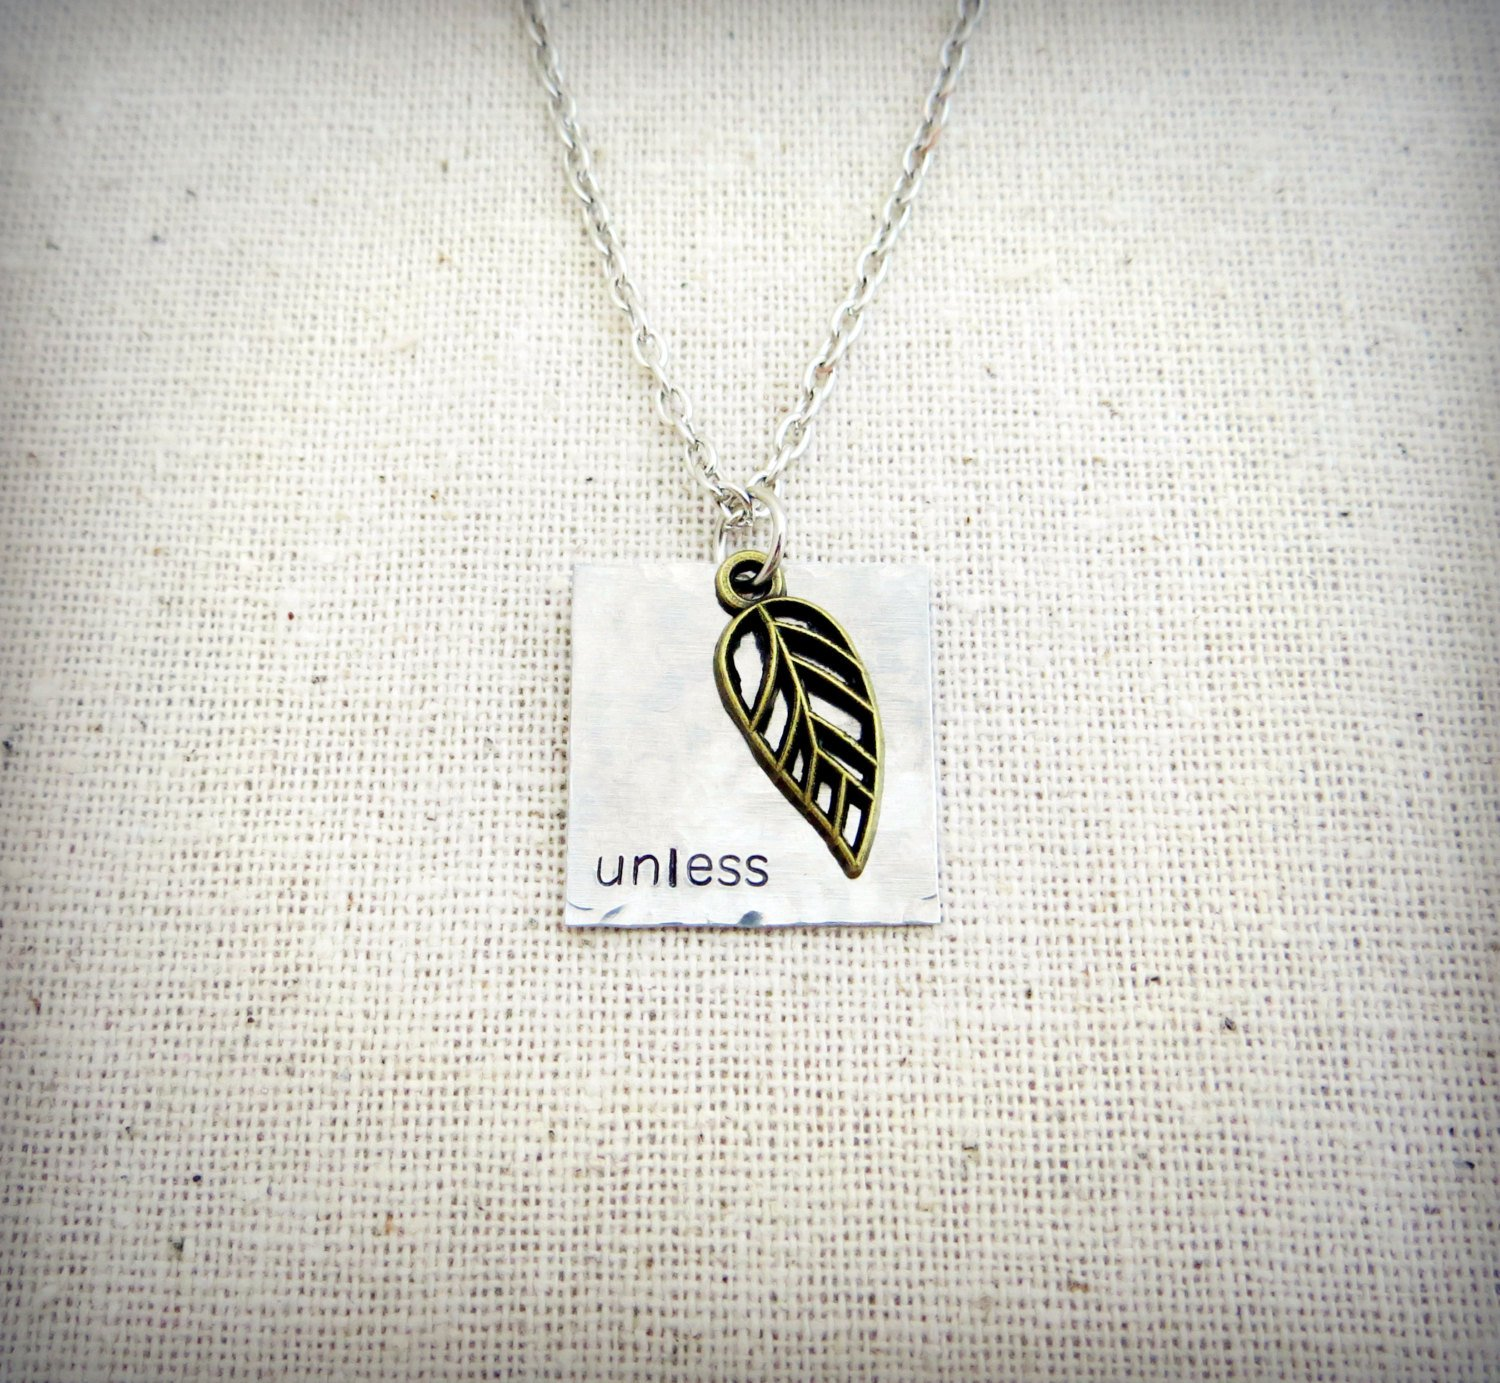 Unless Hammered Stamped Necklace with Leaf Charm (Silver, 18 inches)